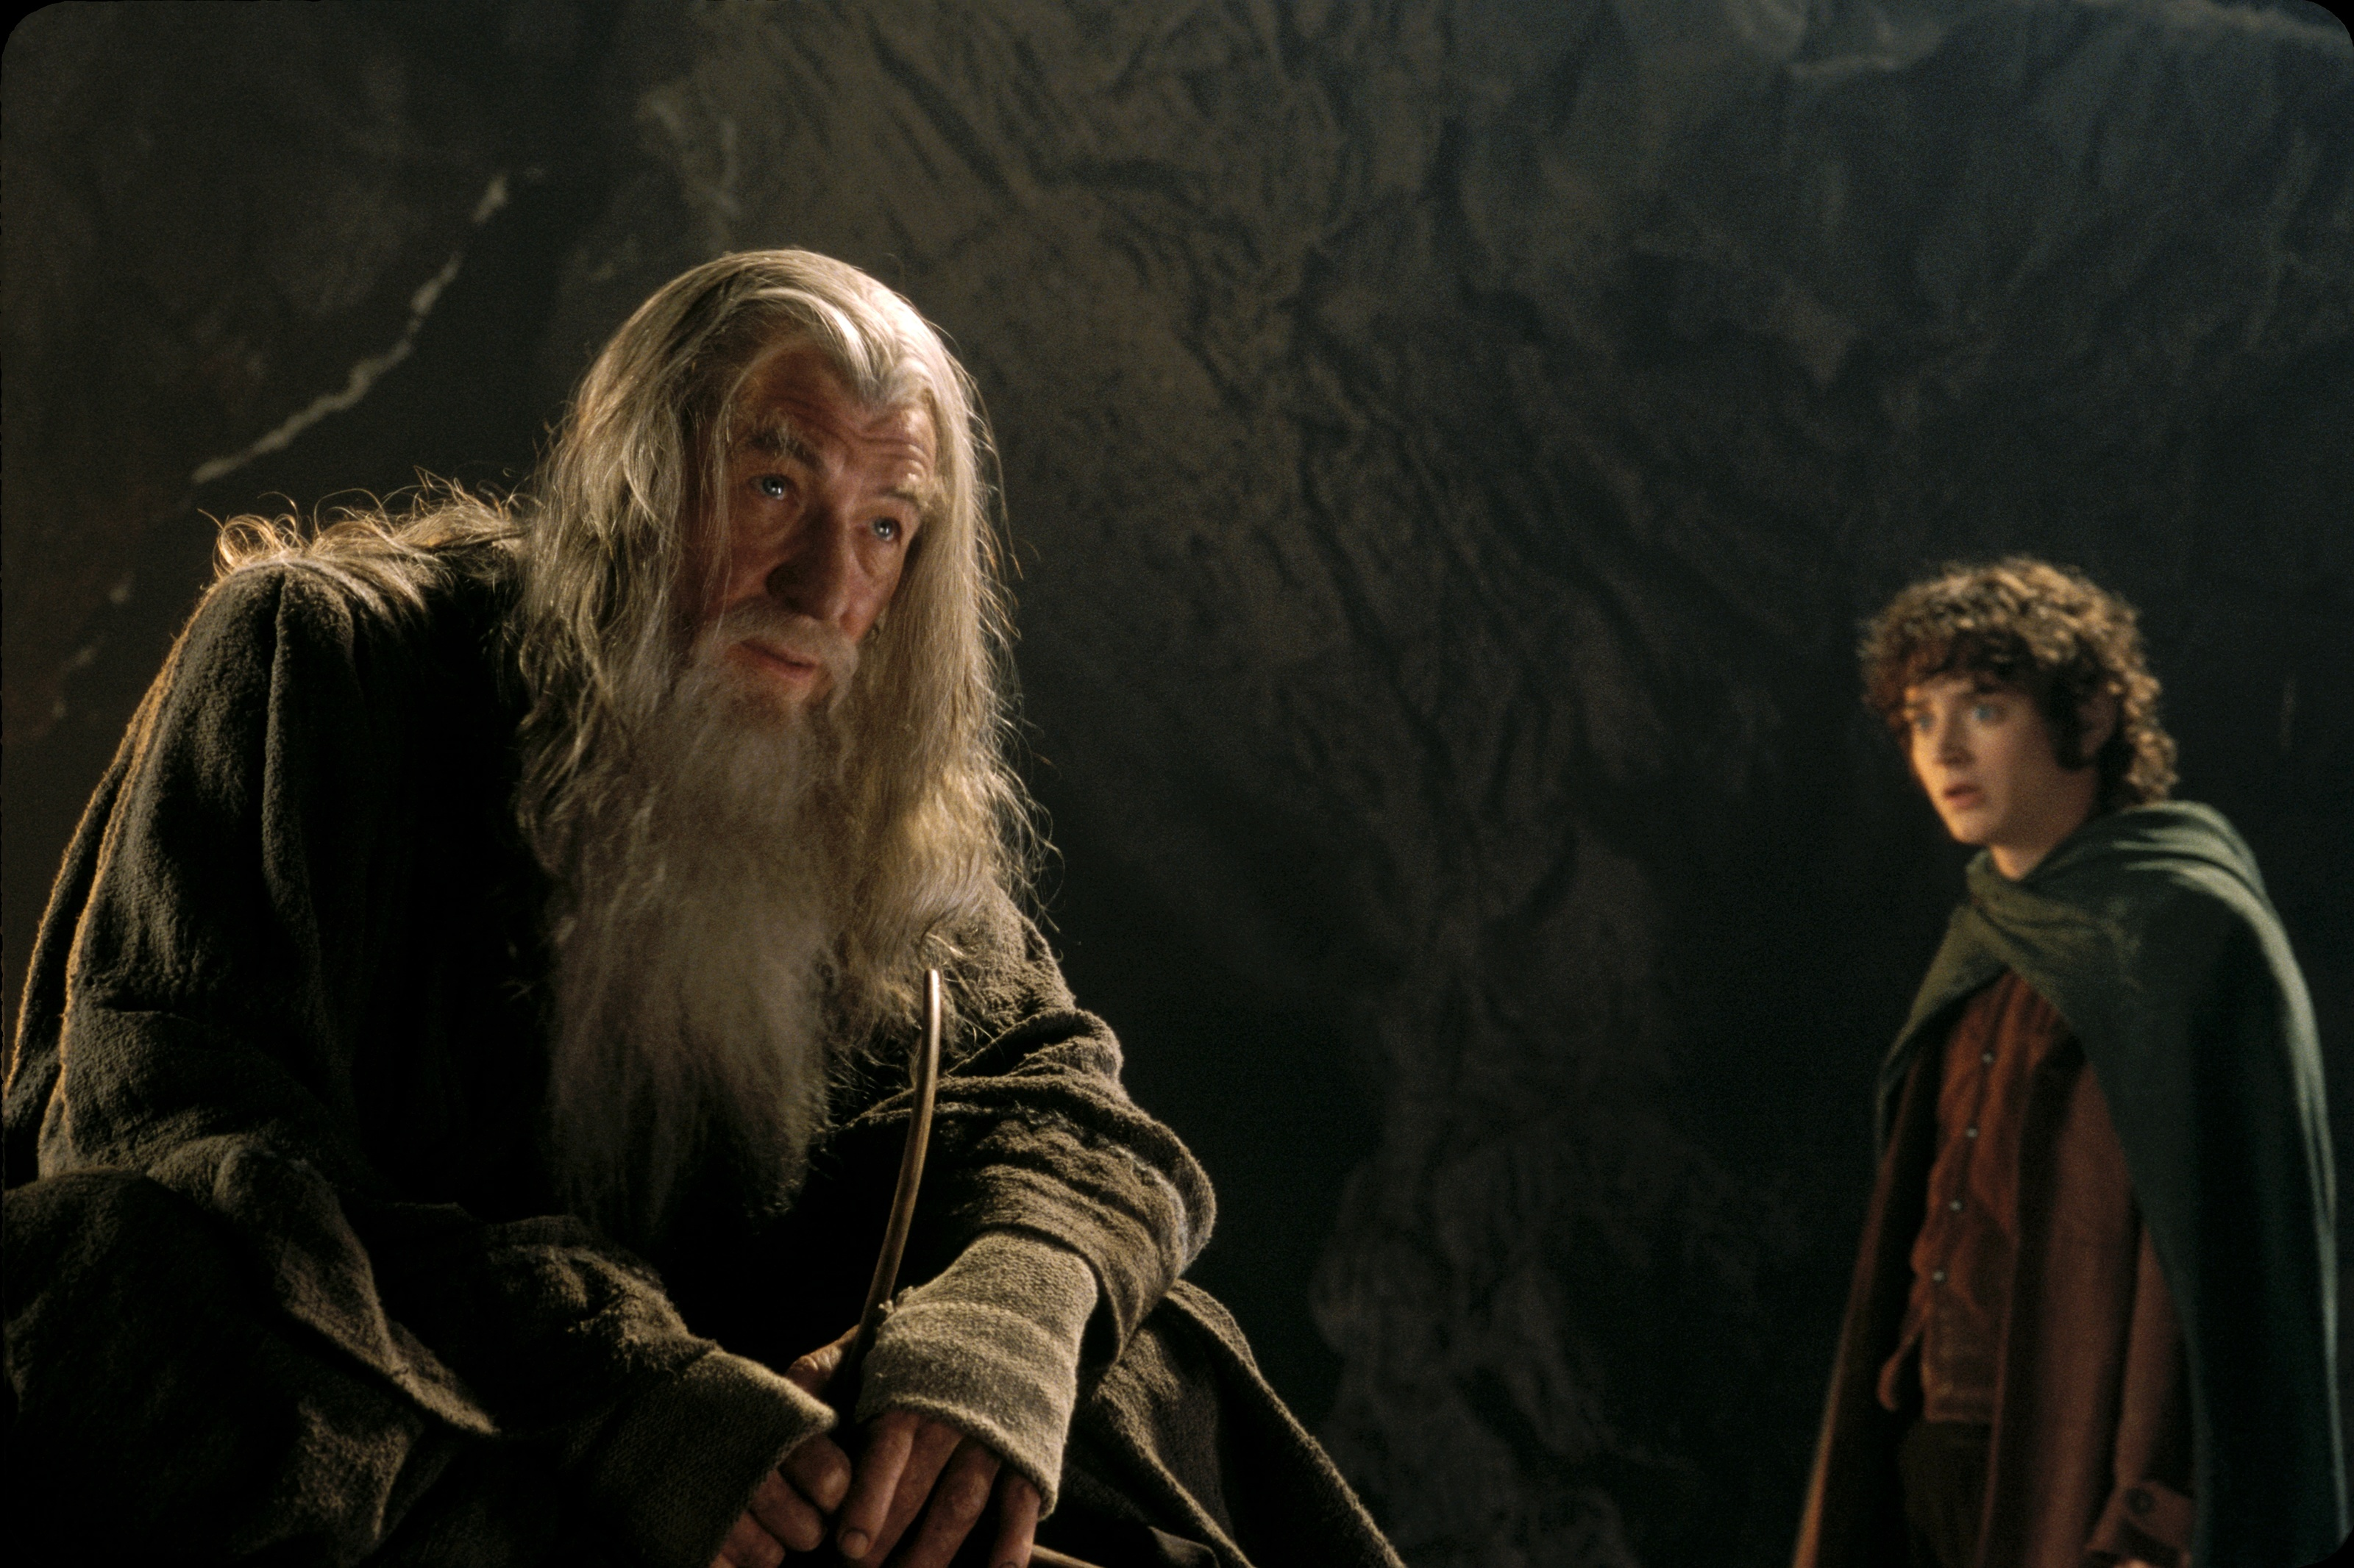 The Lord of the Rings The Fellowship of the Ring - Full Cast & Crew - IMDb